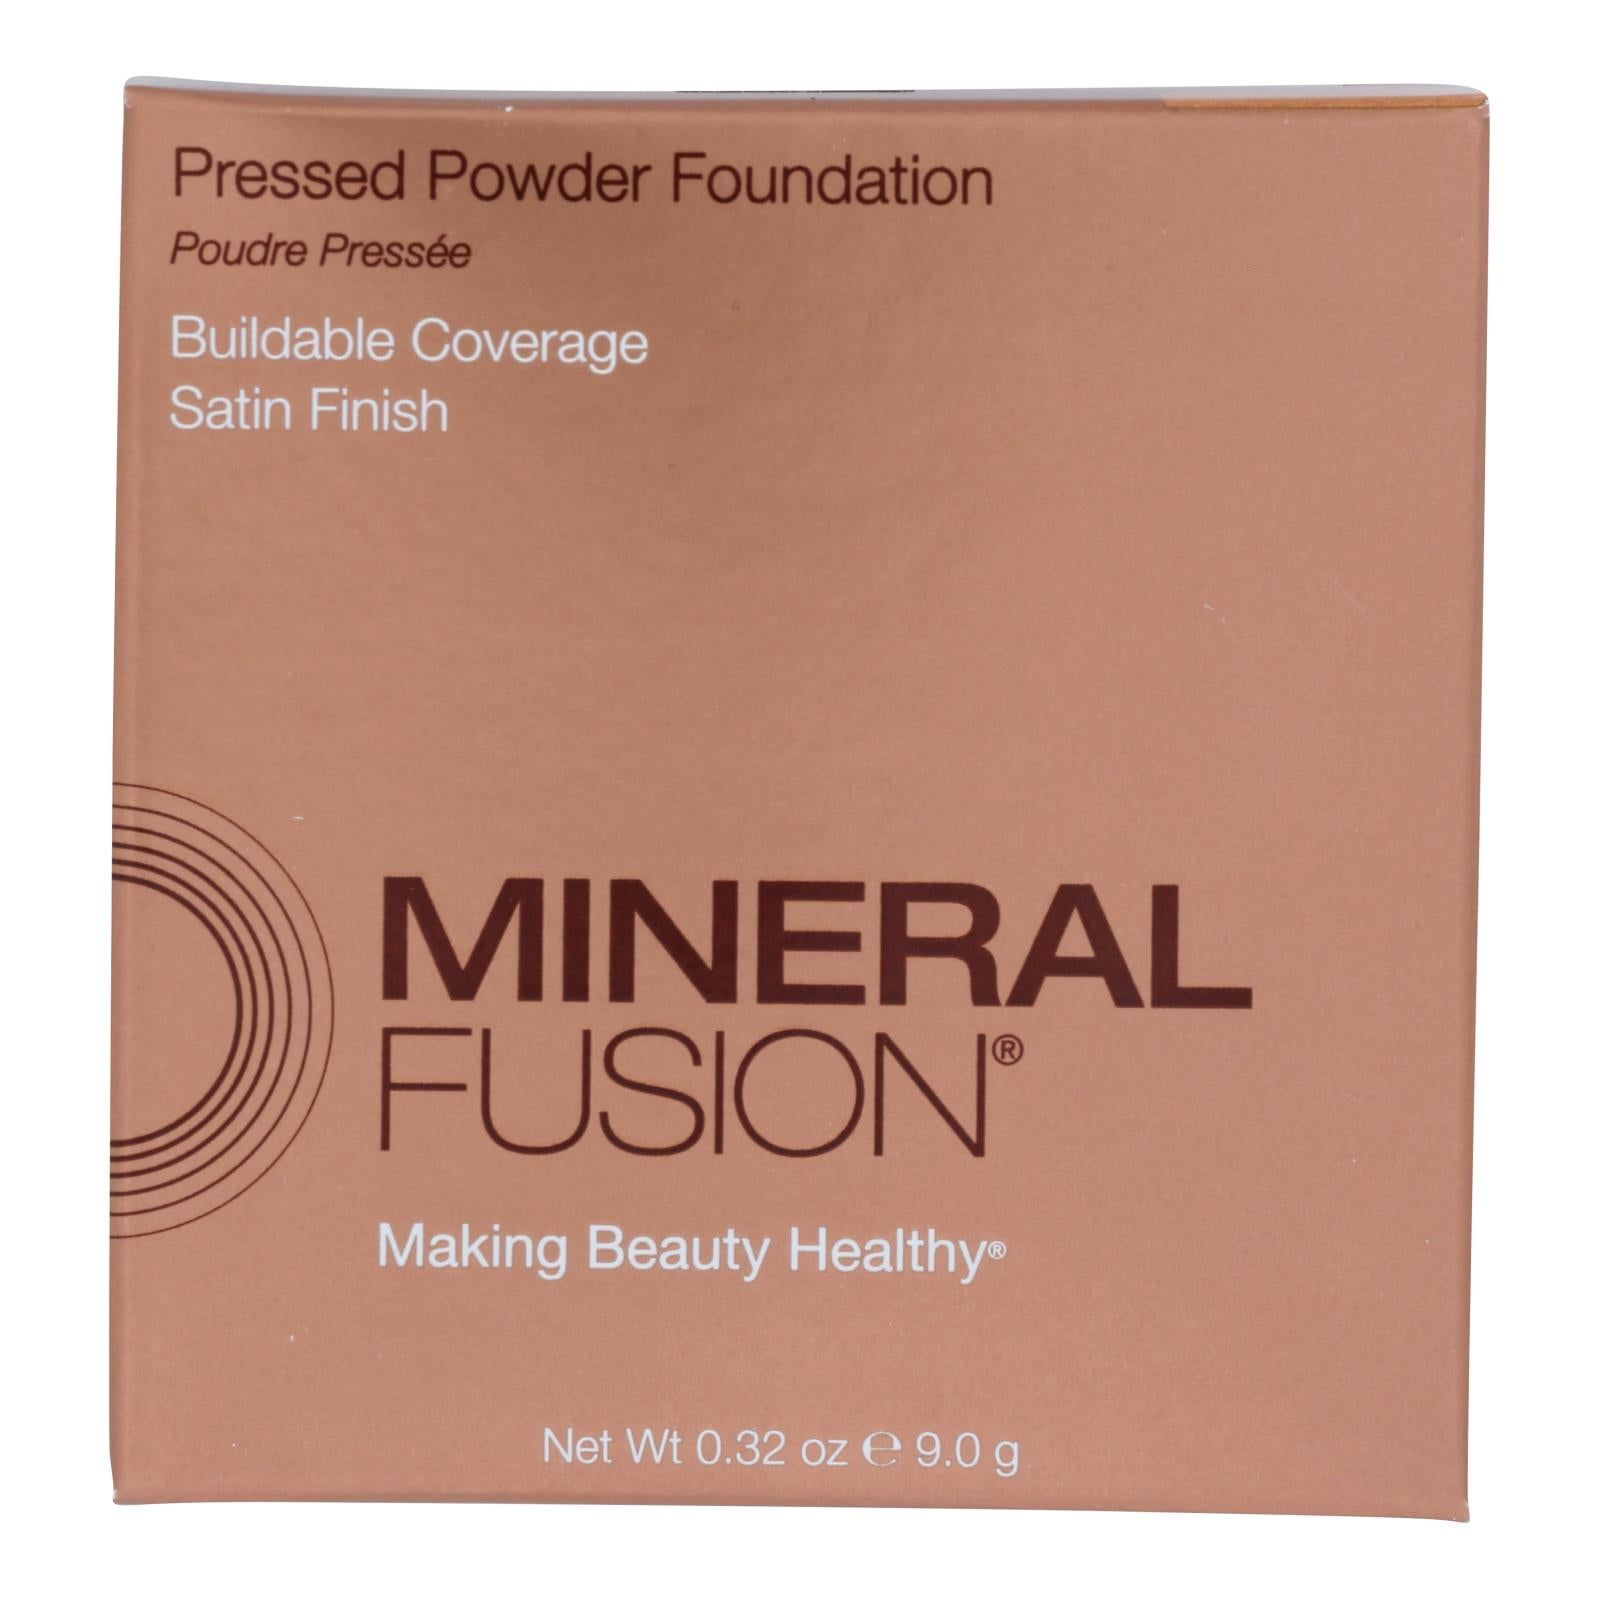 Mineral Fusion - Pressed Powder Foundation - Olive 2 - 0.32 Oz.